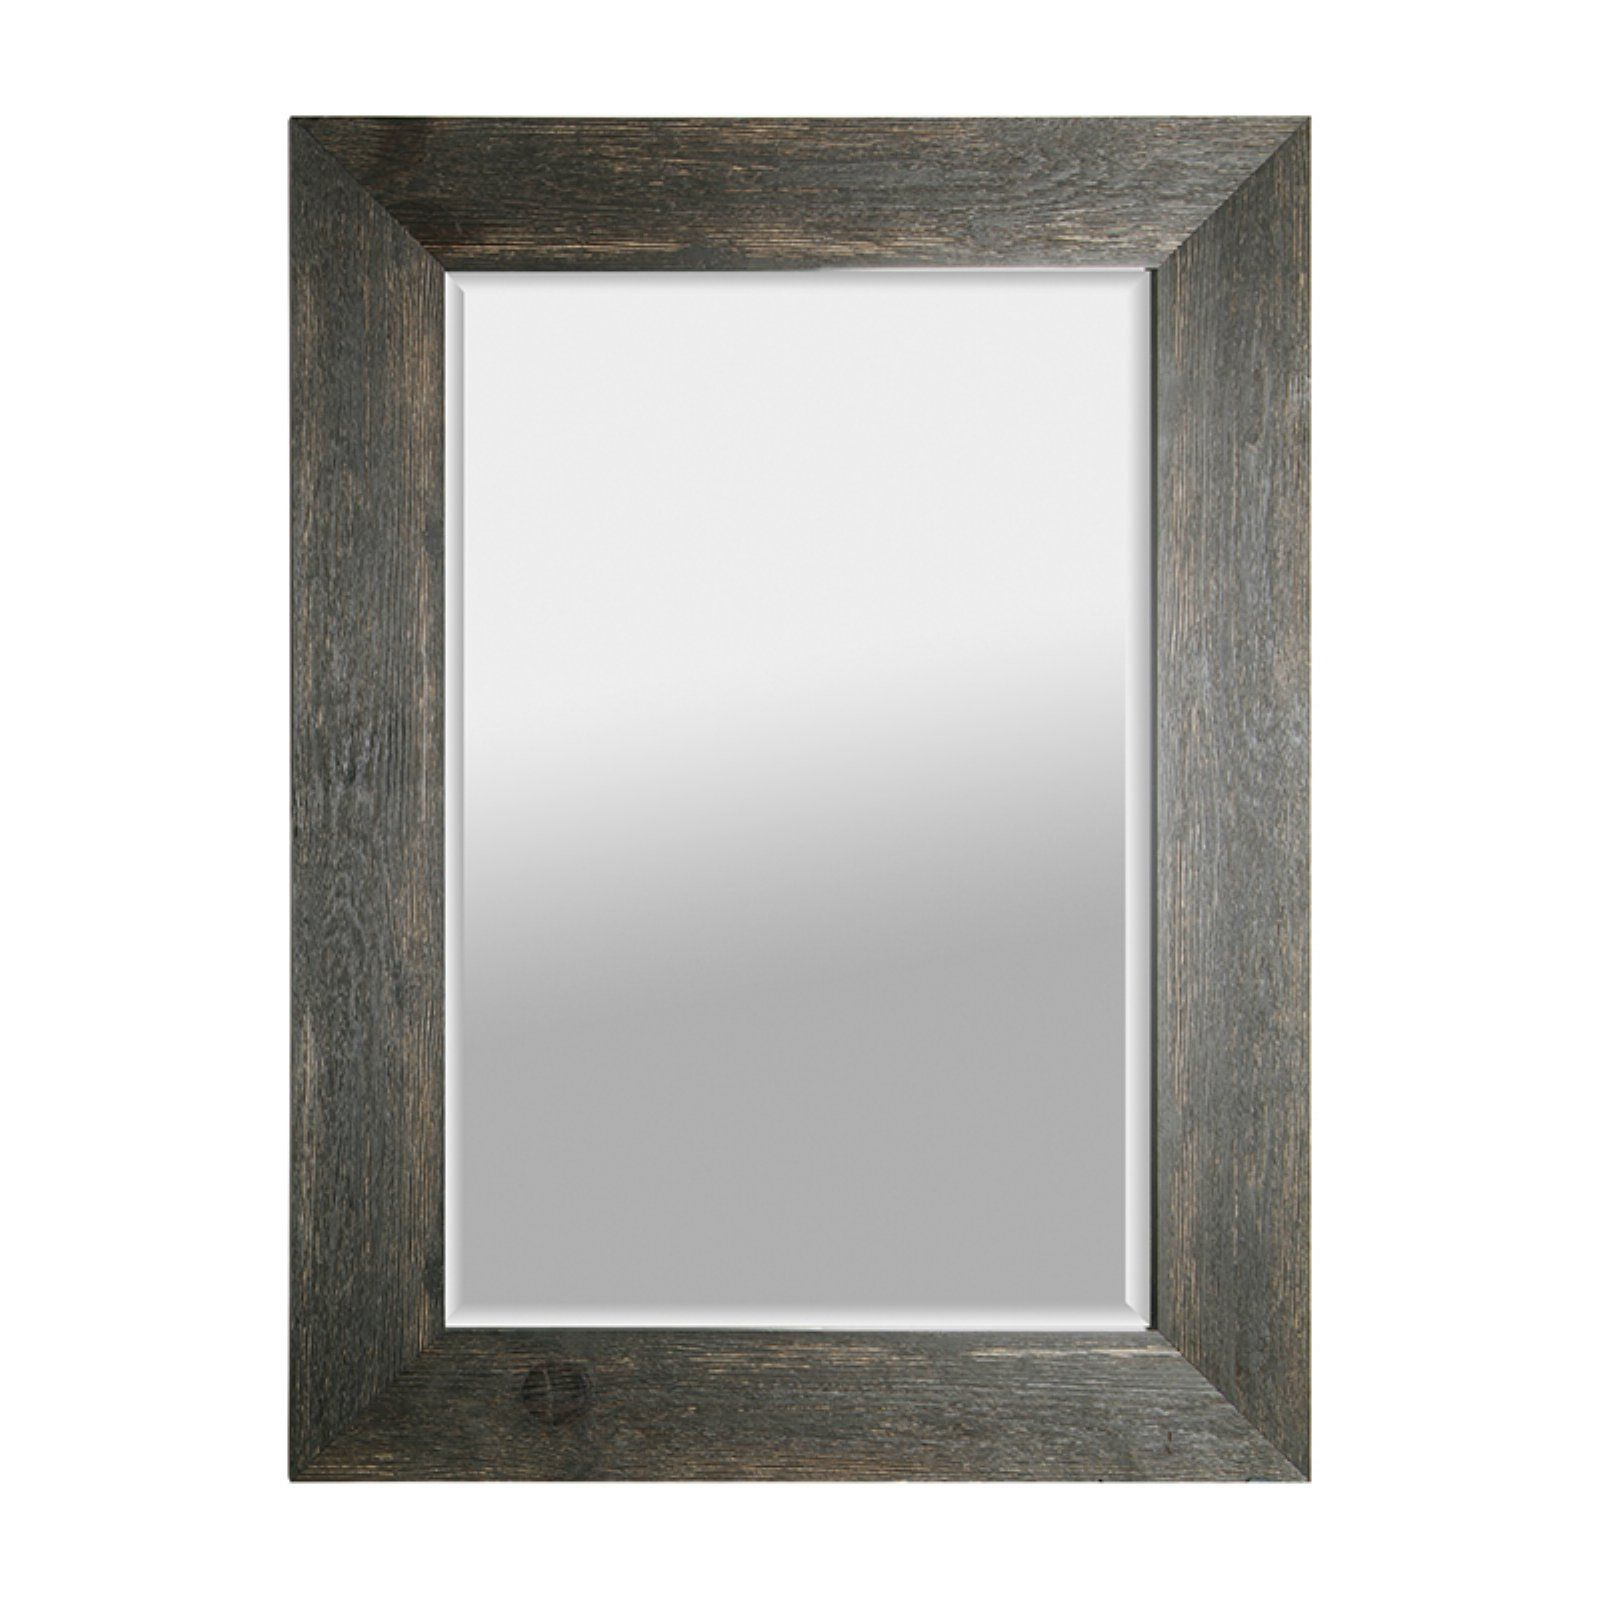 Mirrorize Canada Hand Stained Wood Beveled Mirror 34w X 46h In Black Staining Wood Wood Framed Mirror Beveled Mirror